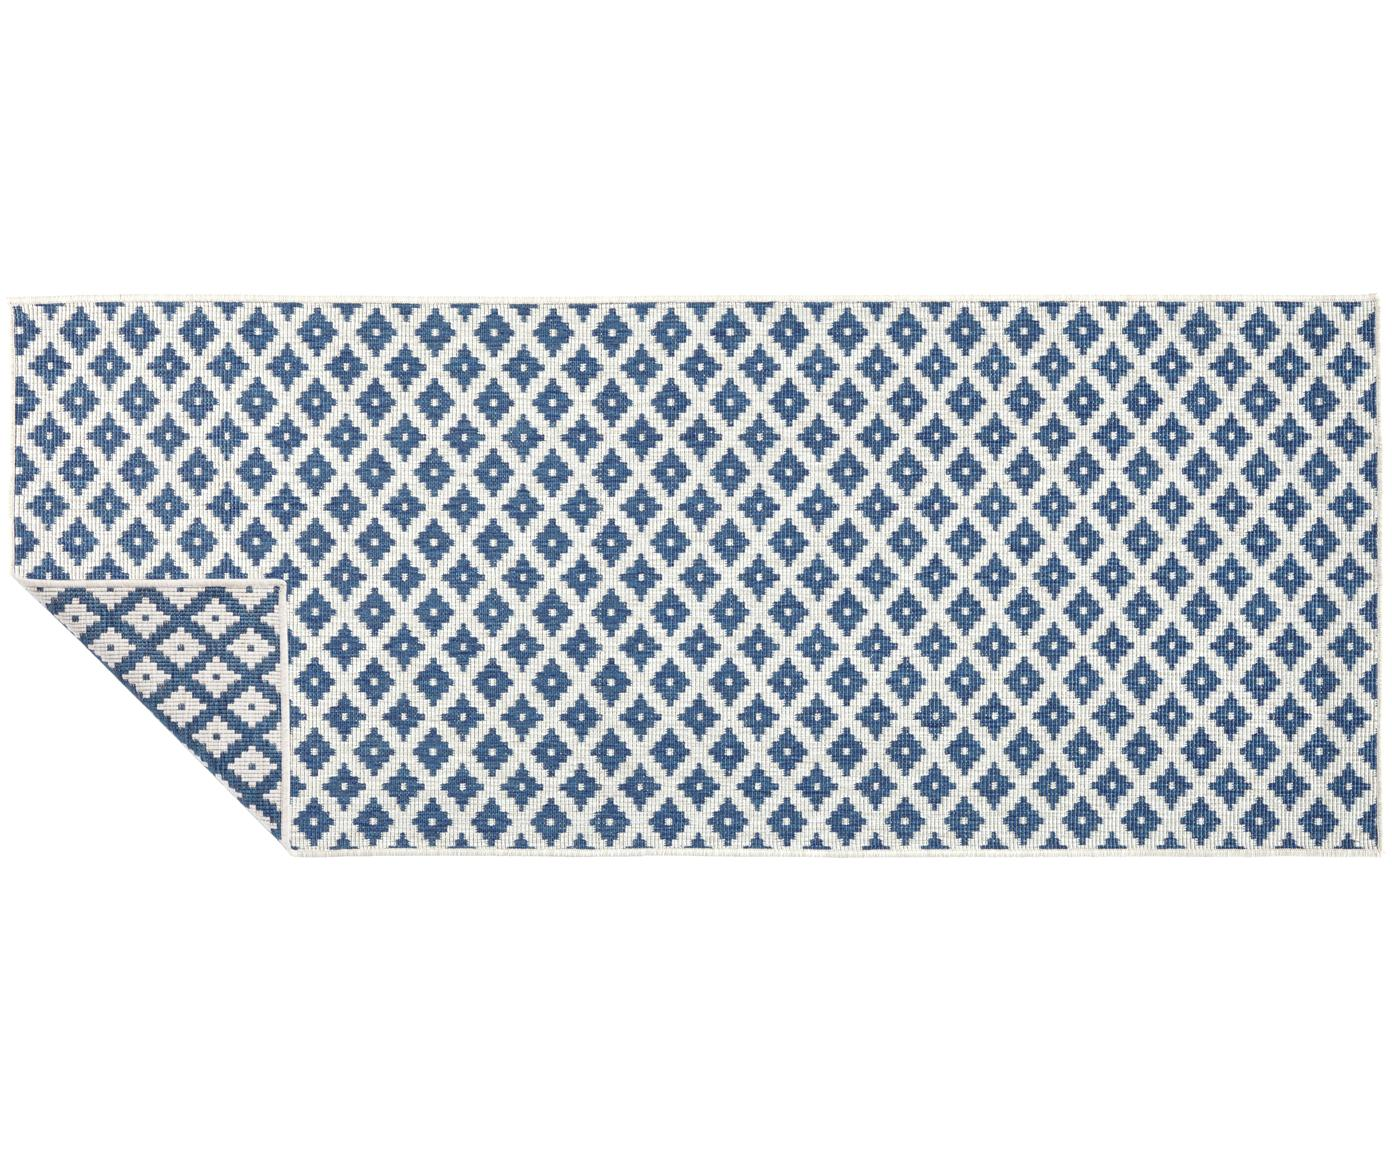 In- und Outdoor-Wendeläufer Nizza in Blau/Creme, Blau, Cremefarben, 80 x 250 cm